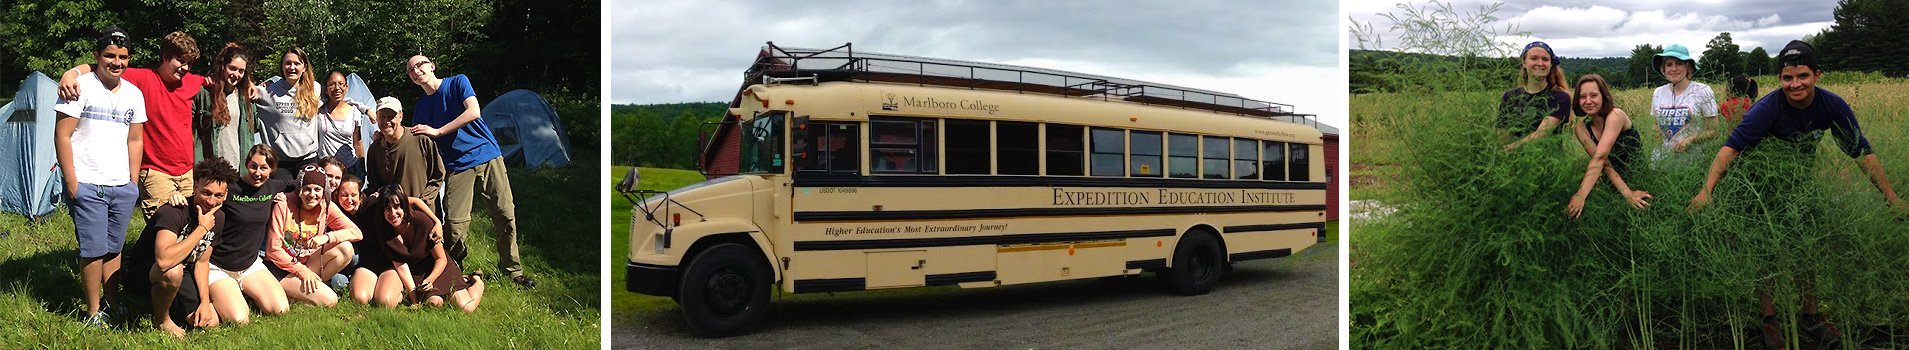 Expedition Education Institute - on the bus